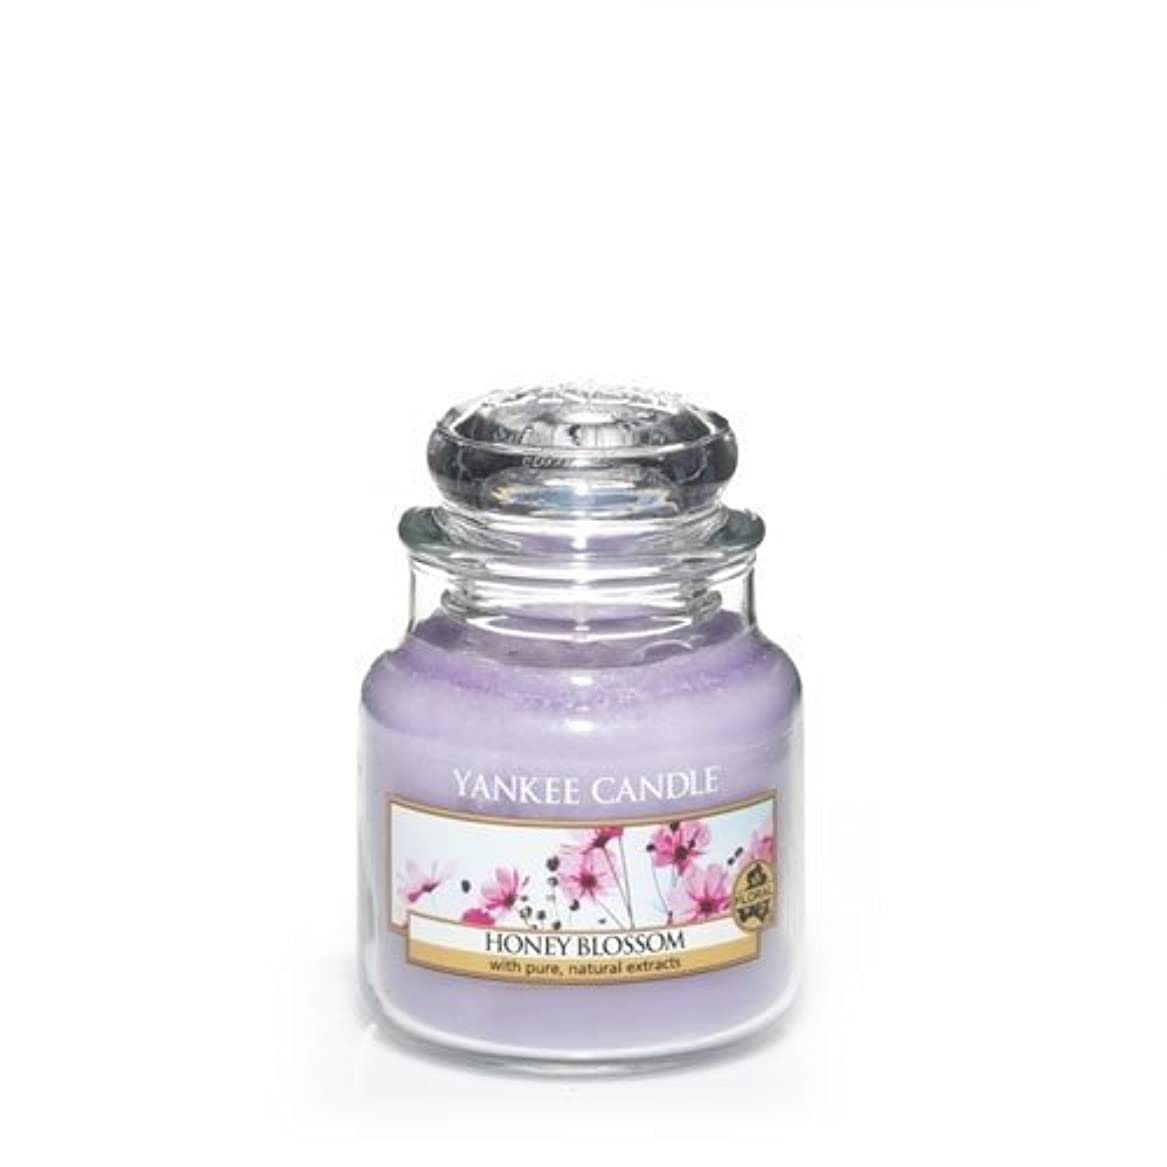 小麦粉拮抗する原油Yankee Candle Honey Blossom Small Jar Candle, Floral Scent by Yankee Candle [並行輸入品]